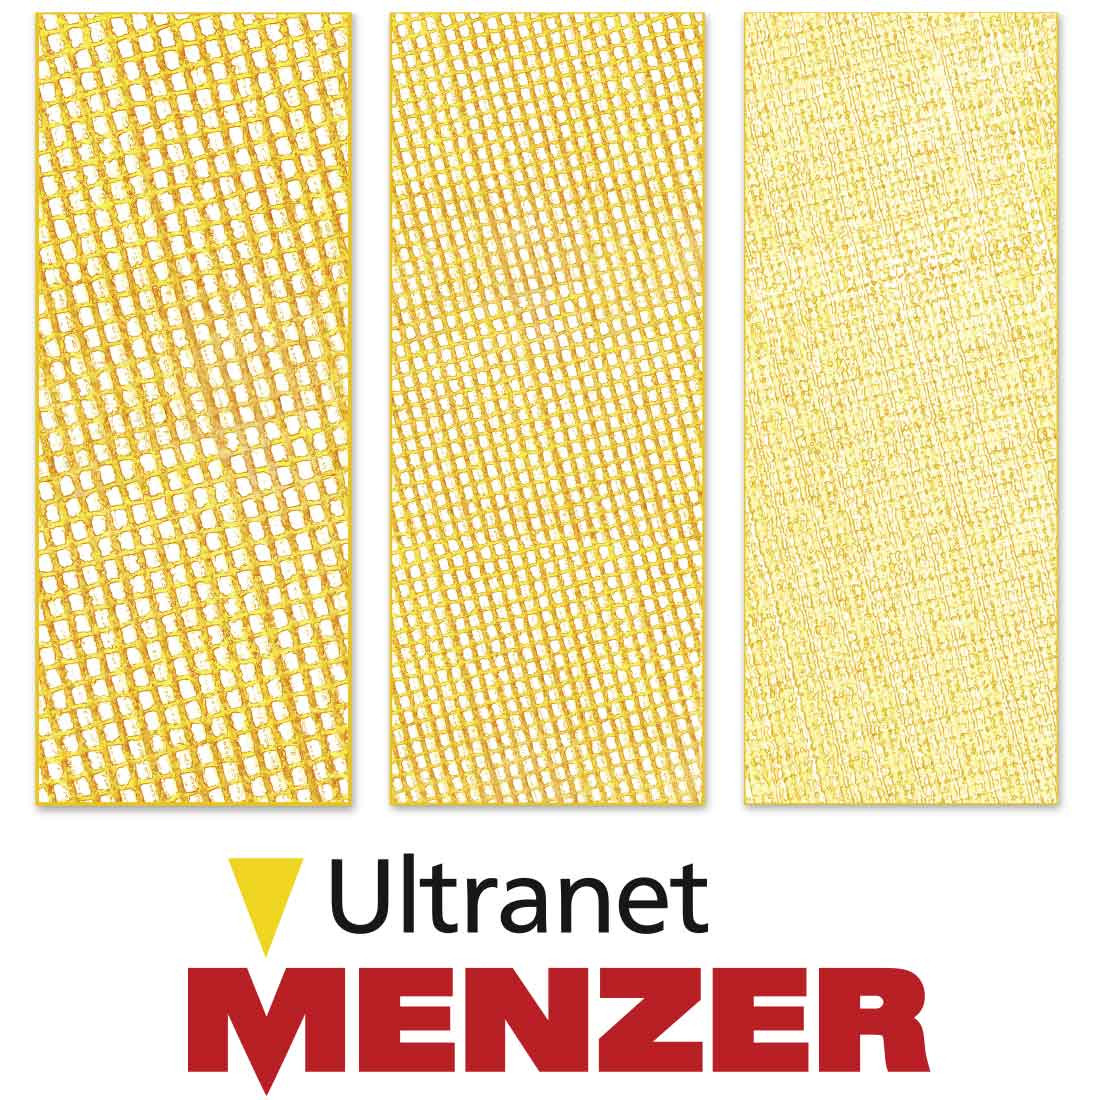 MENZER Ultranet® for drywall sanders / Ø 225 mm / fused aluminium oxide